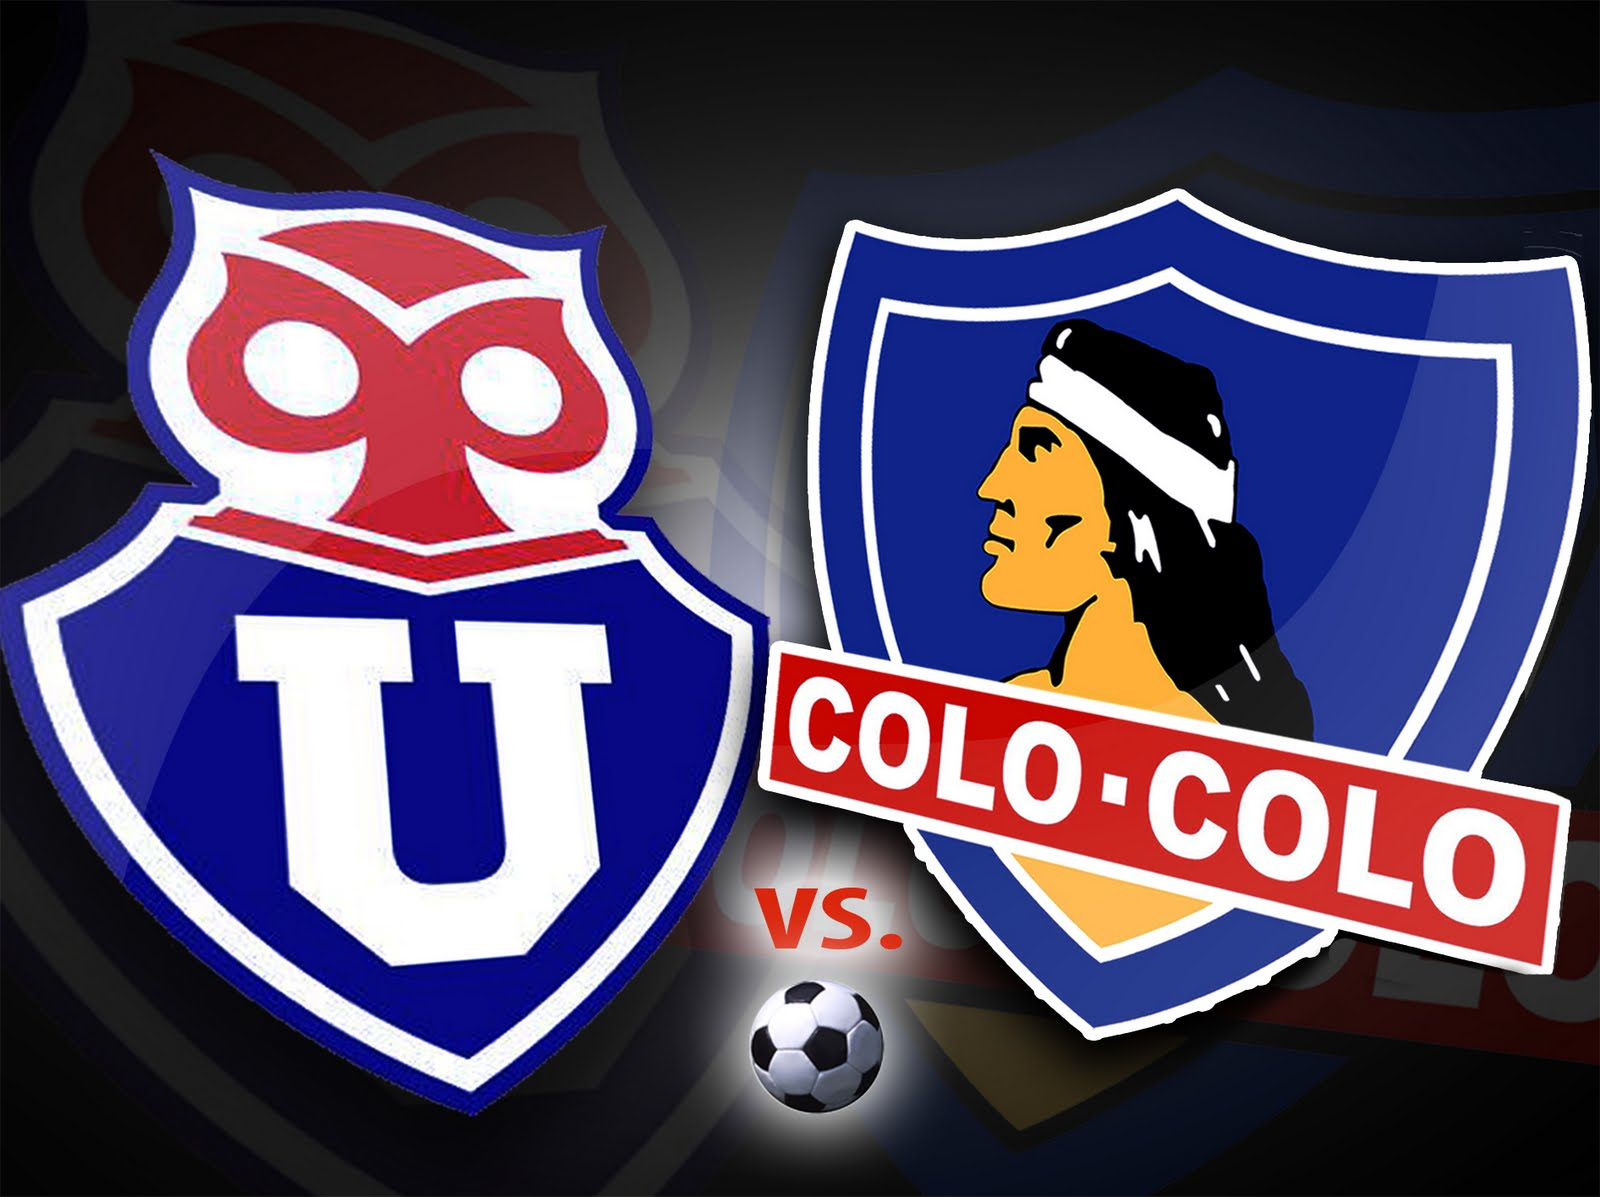 Universidad De Chile Vs Colo Colo Hora 16 00 Hrs Fecha Domingo 29 De